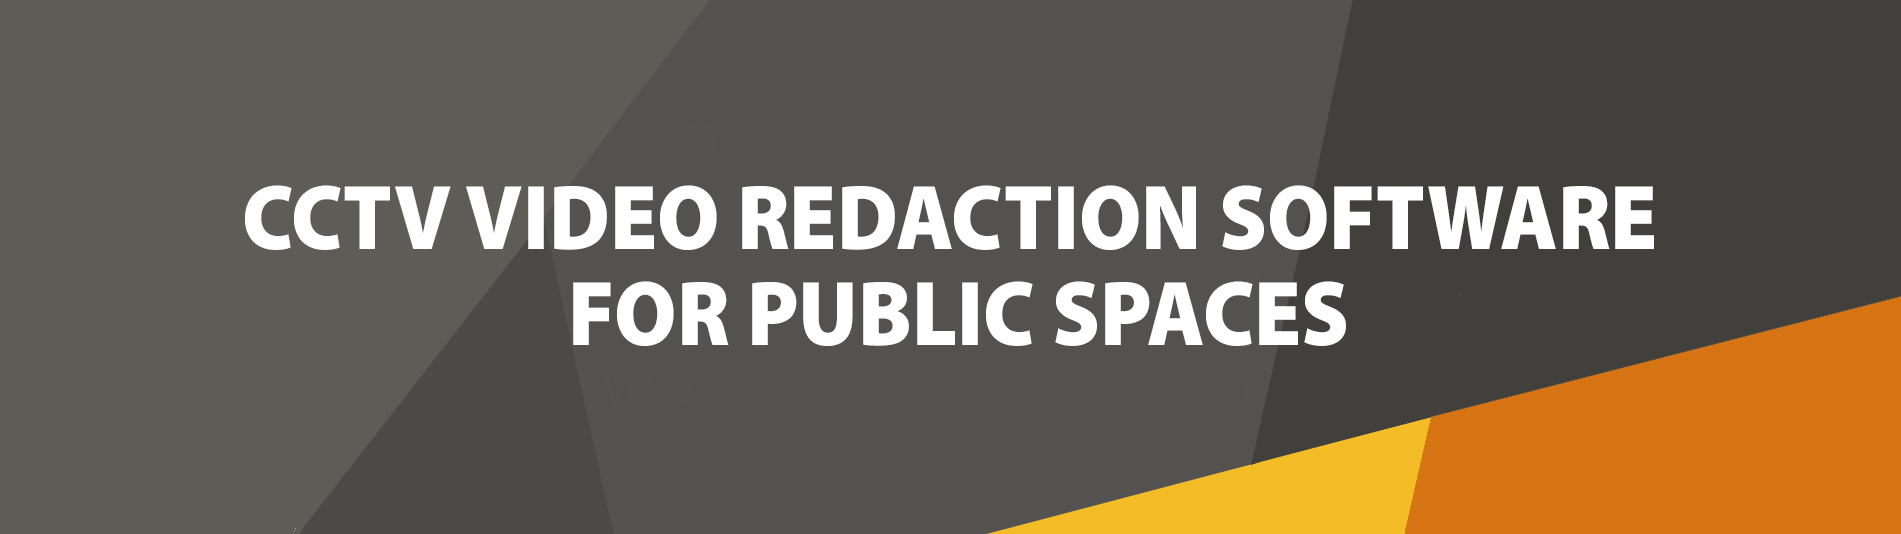 CCTV video redaction software for public spaces